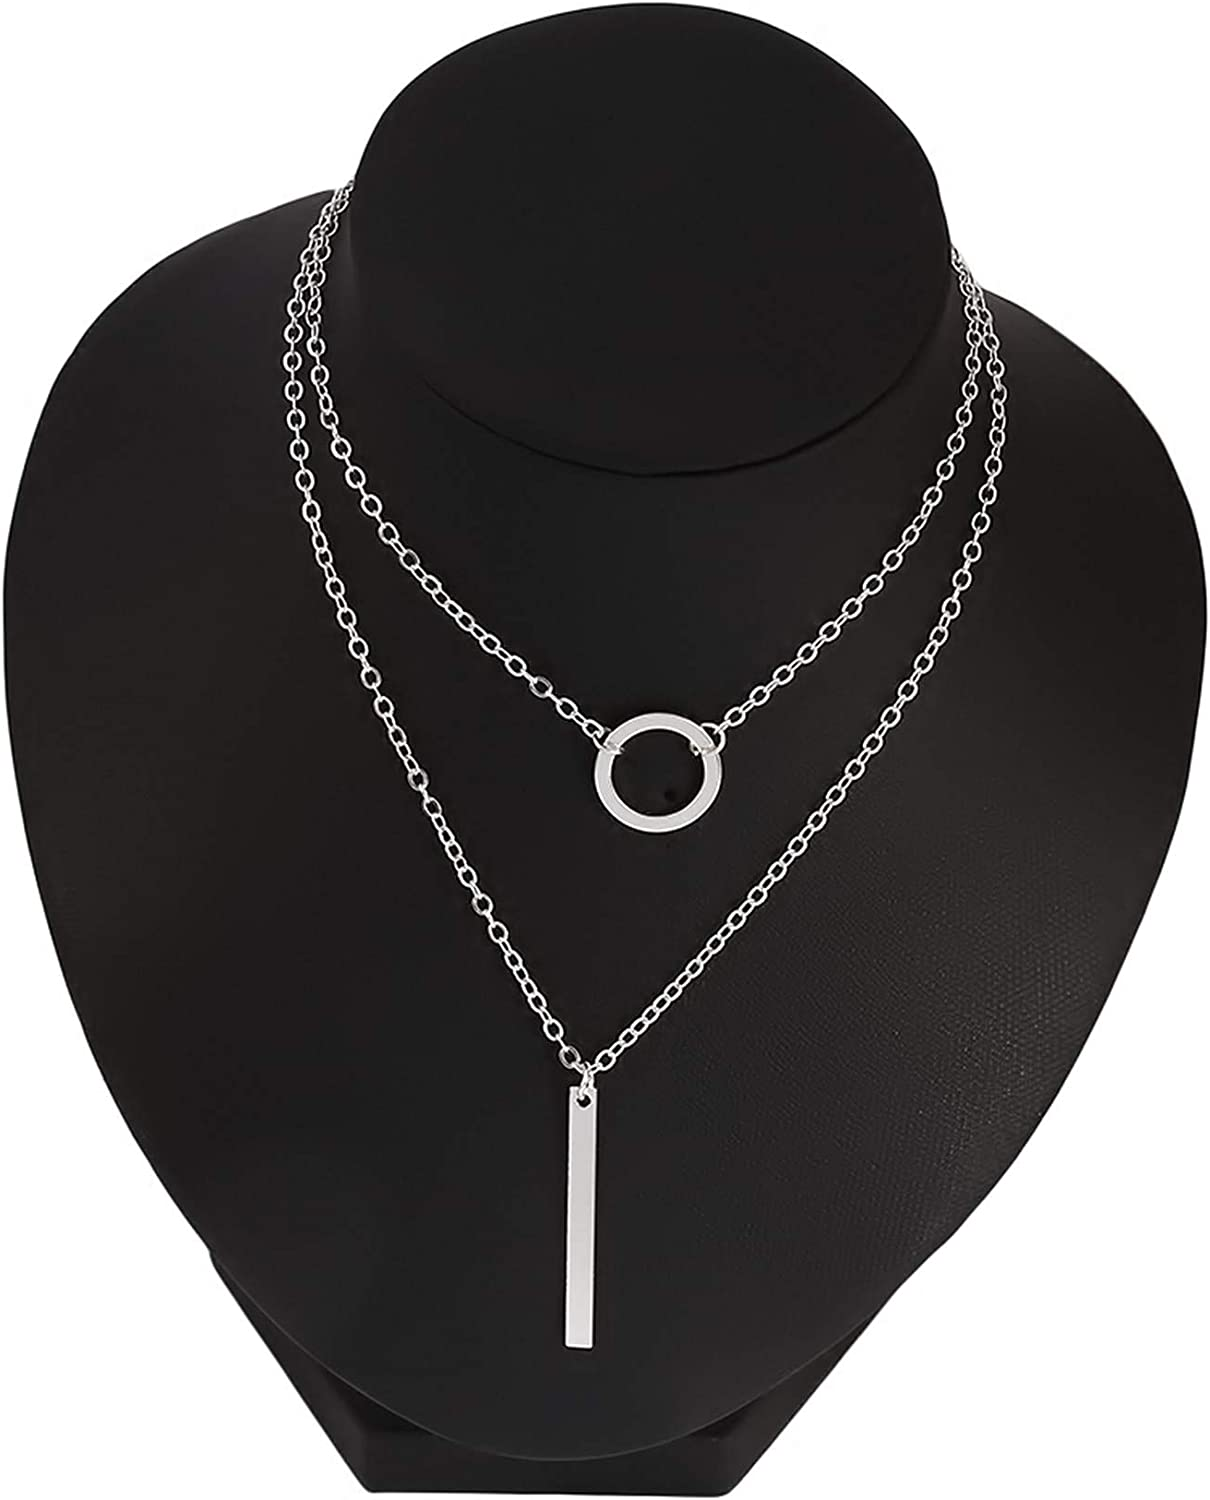 Airlove Bar Pendant Necklace Gold Long Y-Necklace Delicate Lariat Chain Jewelry for Women and Girls